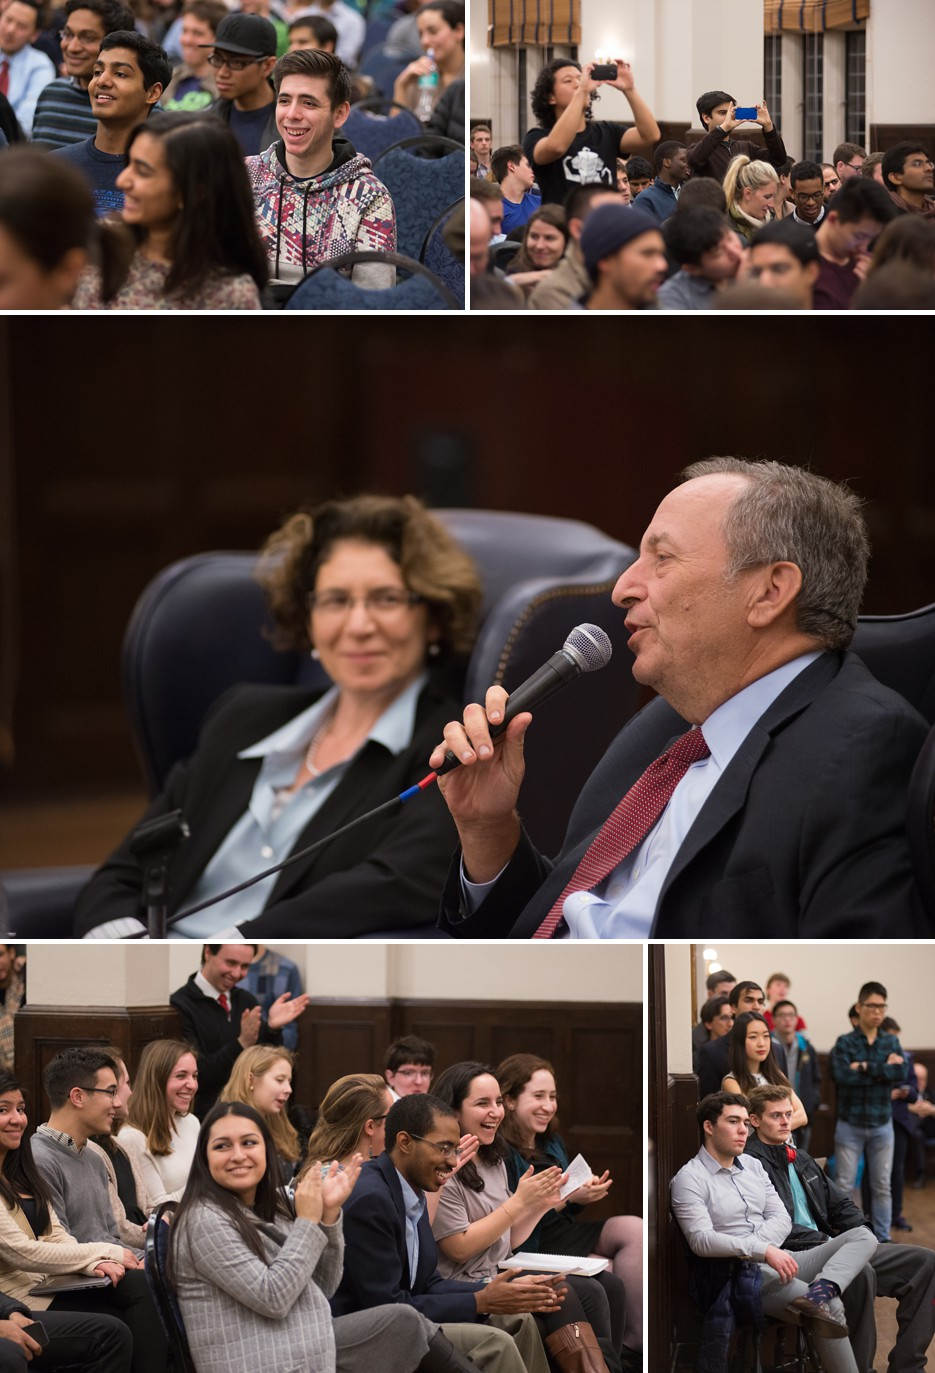 Former Harvard President Lawrence Summers